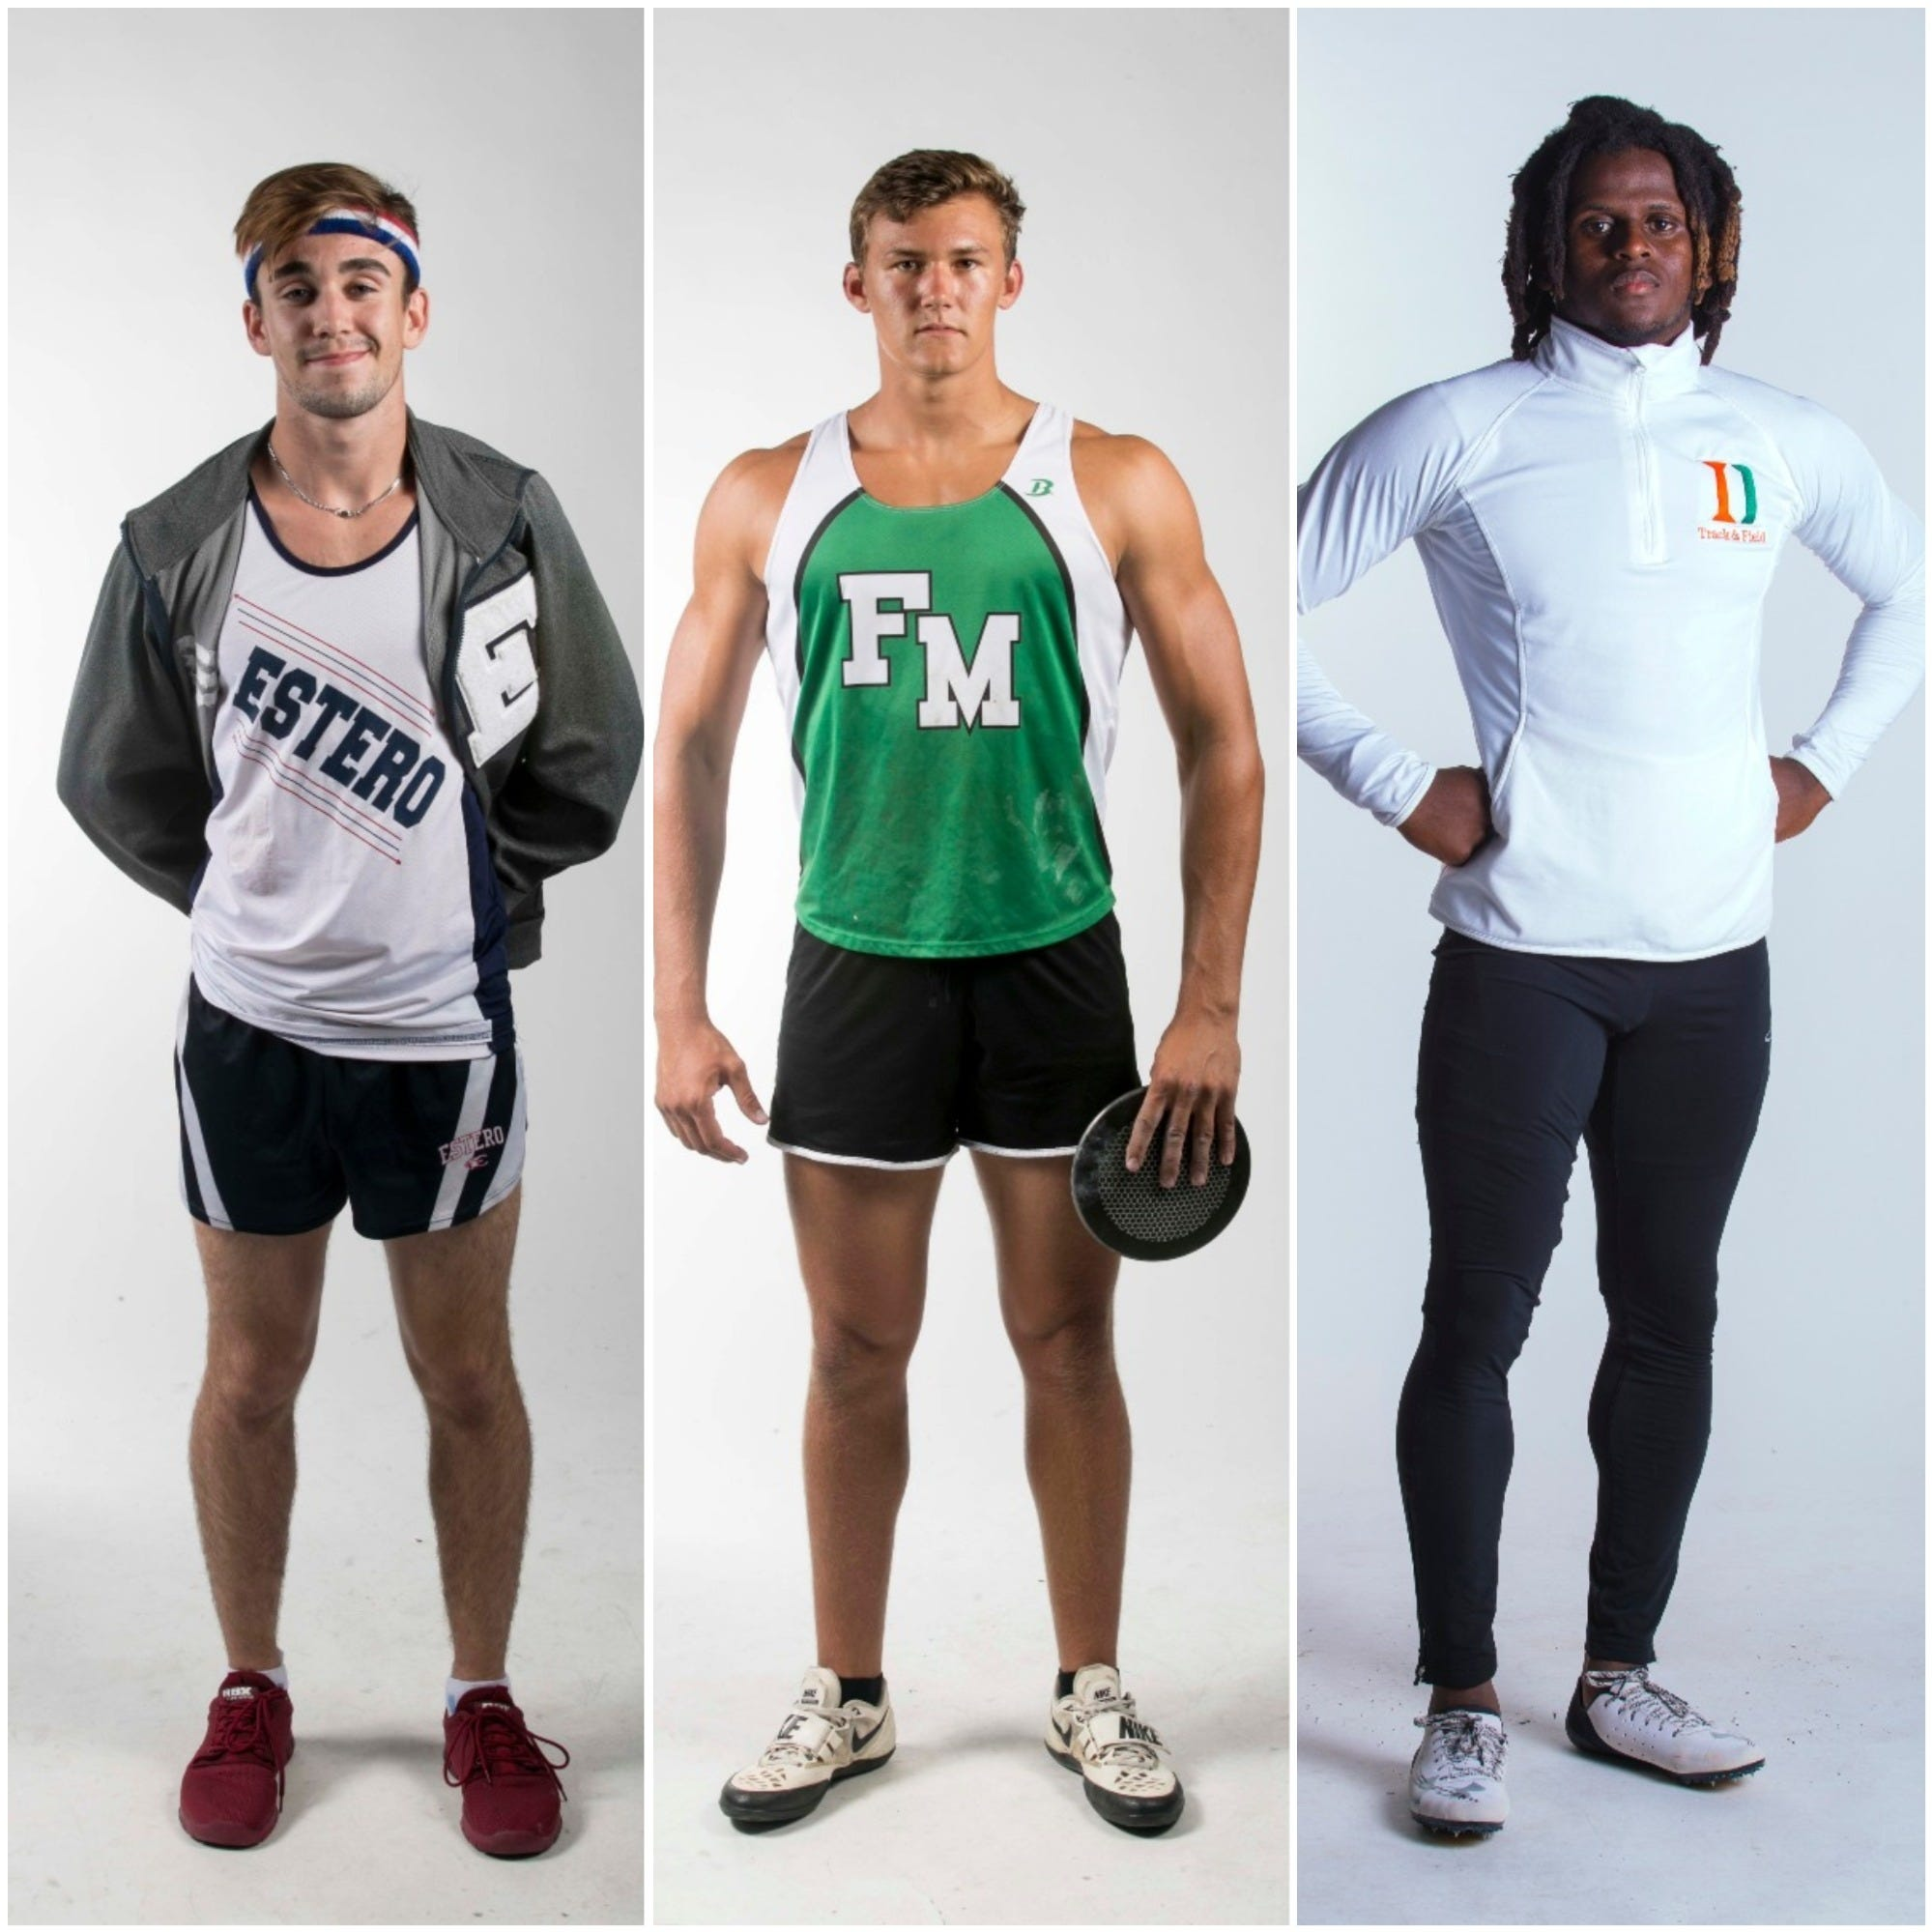 The News-Press 2019 All-Area Boys Track and Field team